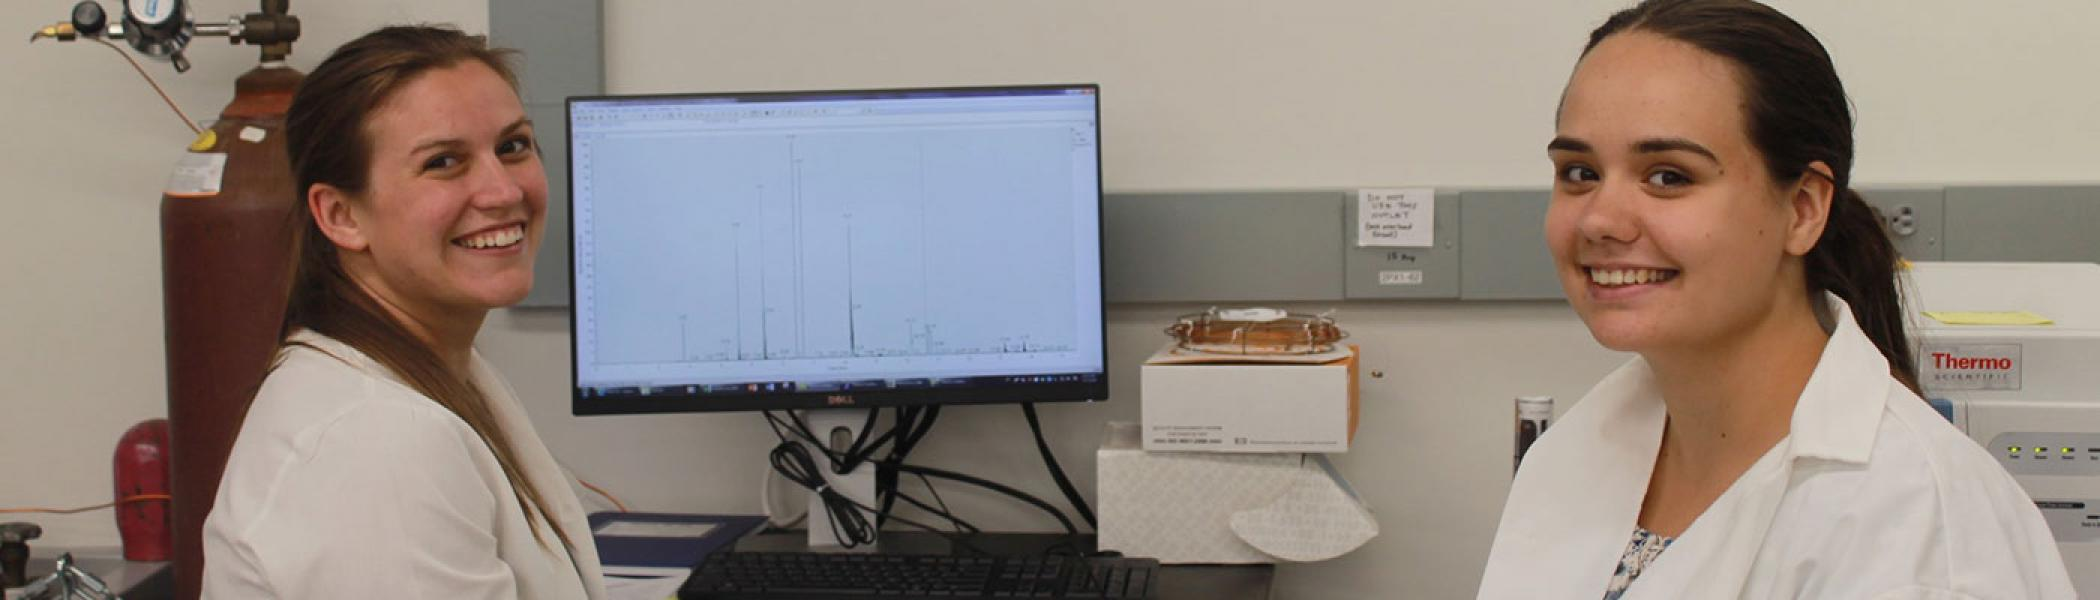 Two scientists analyzing data shown on a monitor.